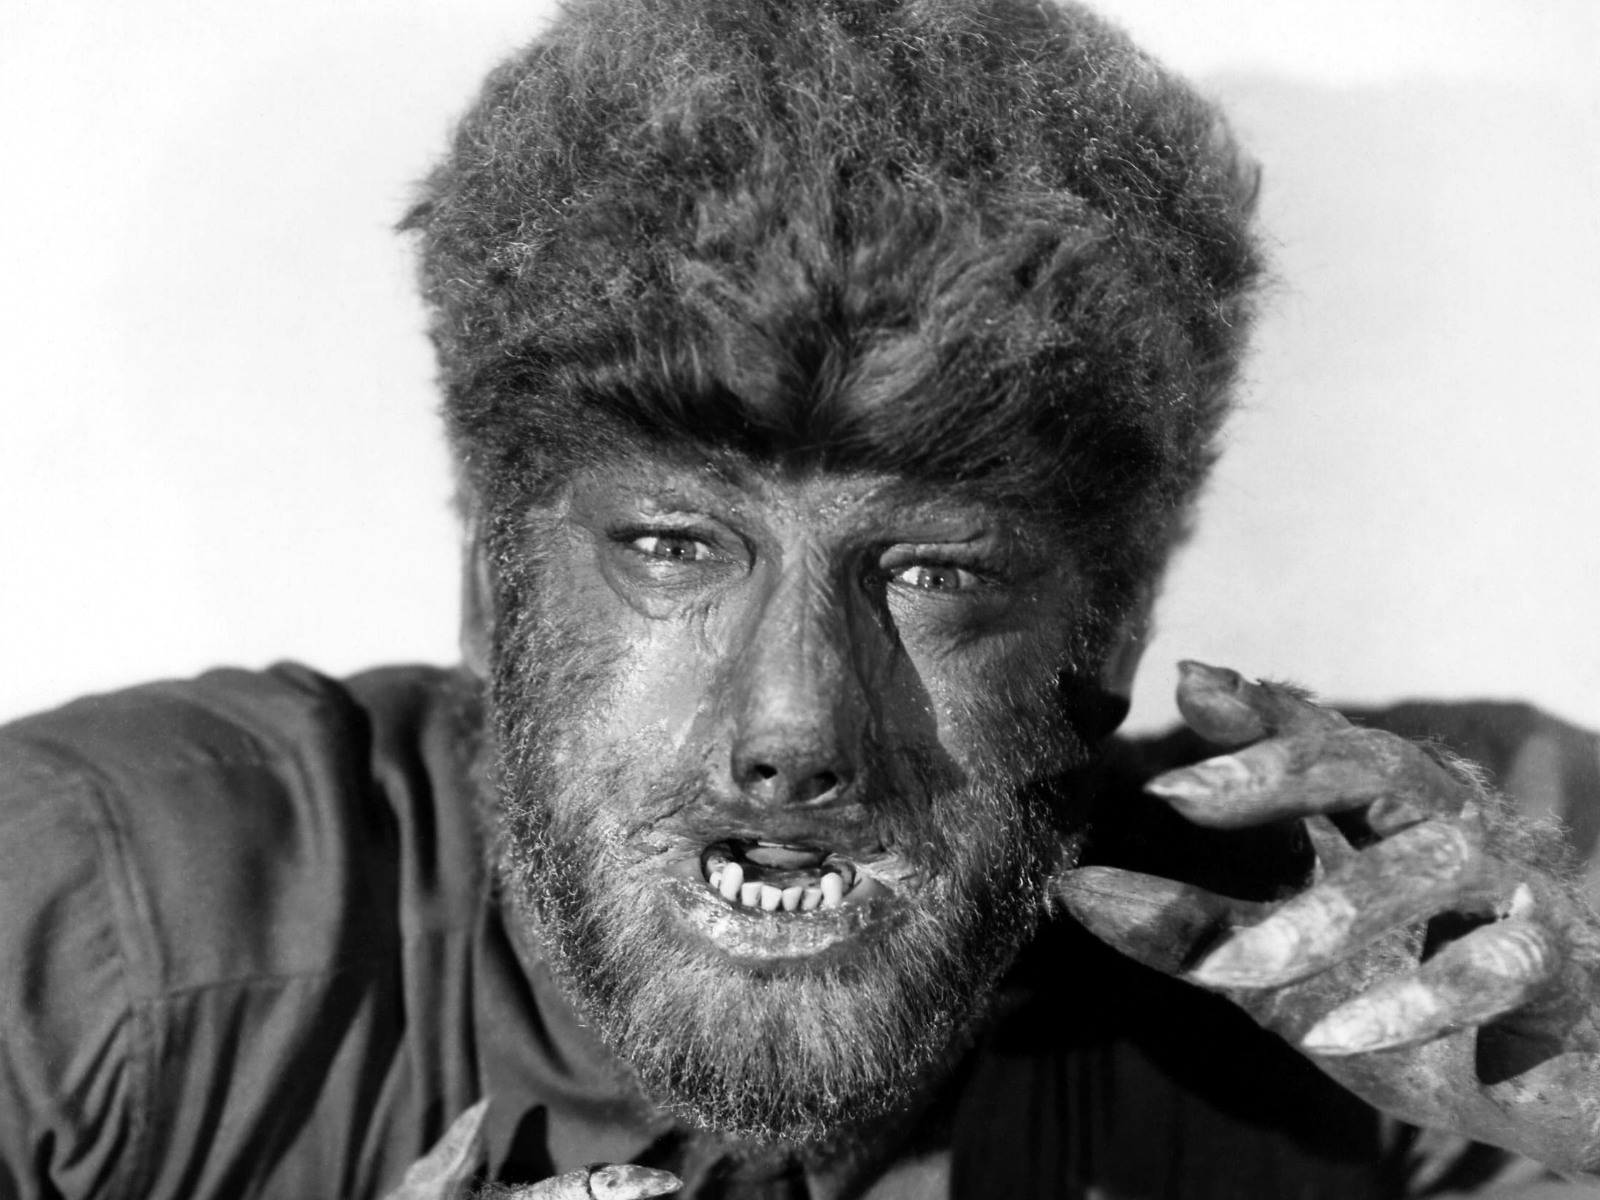 SIR EDWIN FLUFFER REMEMBERS LON CHANEY JR